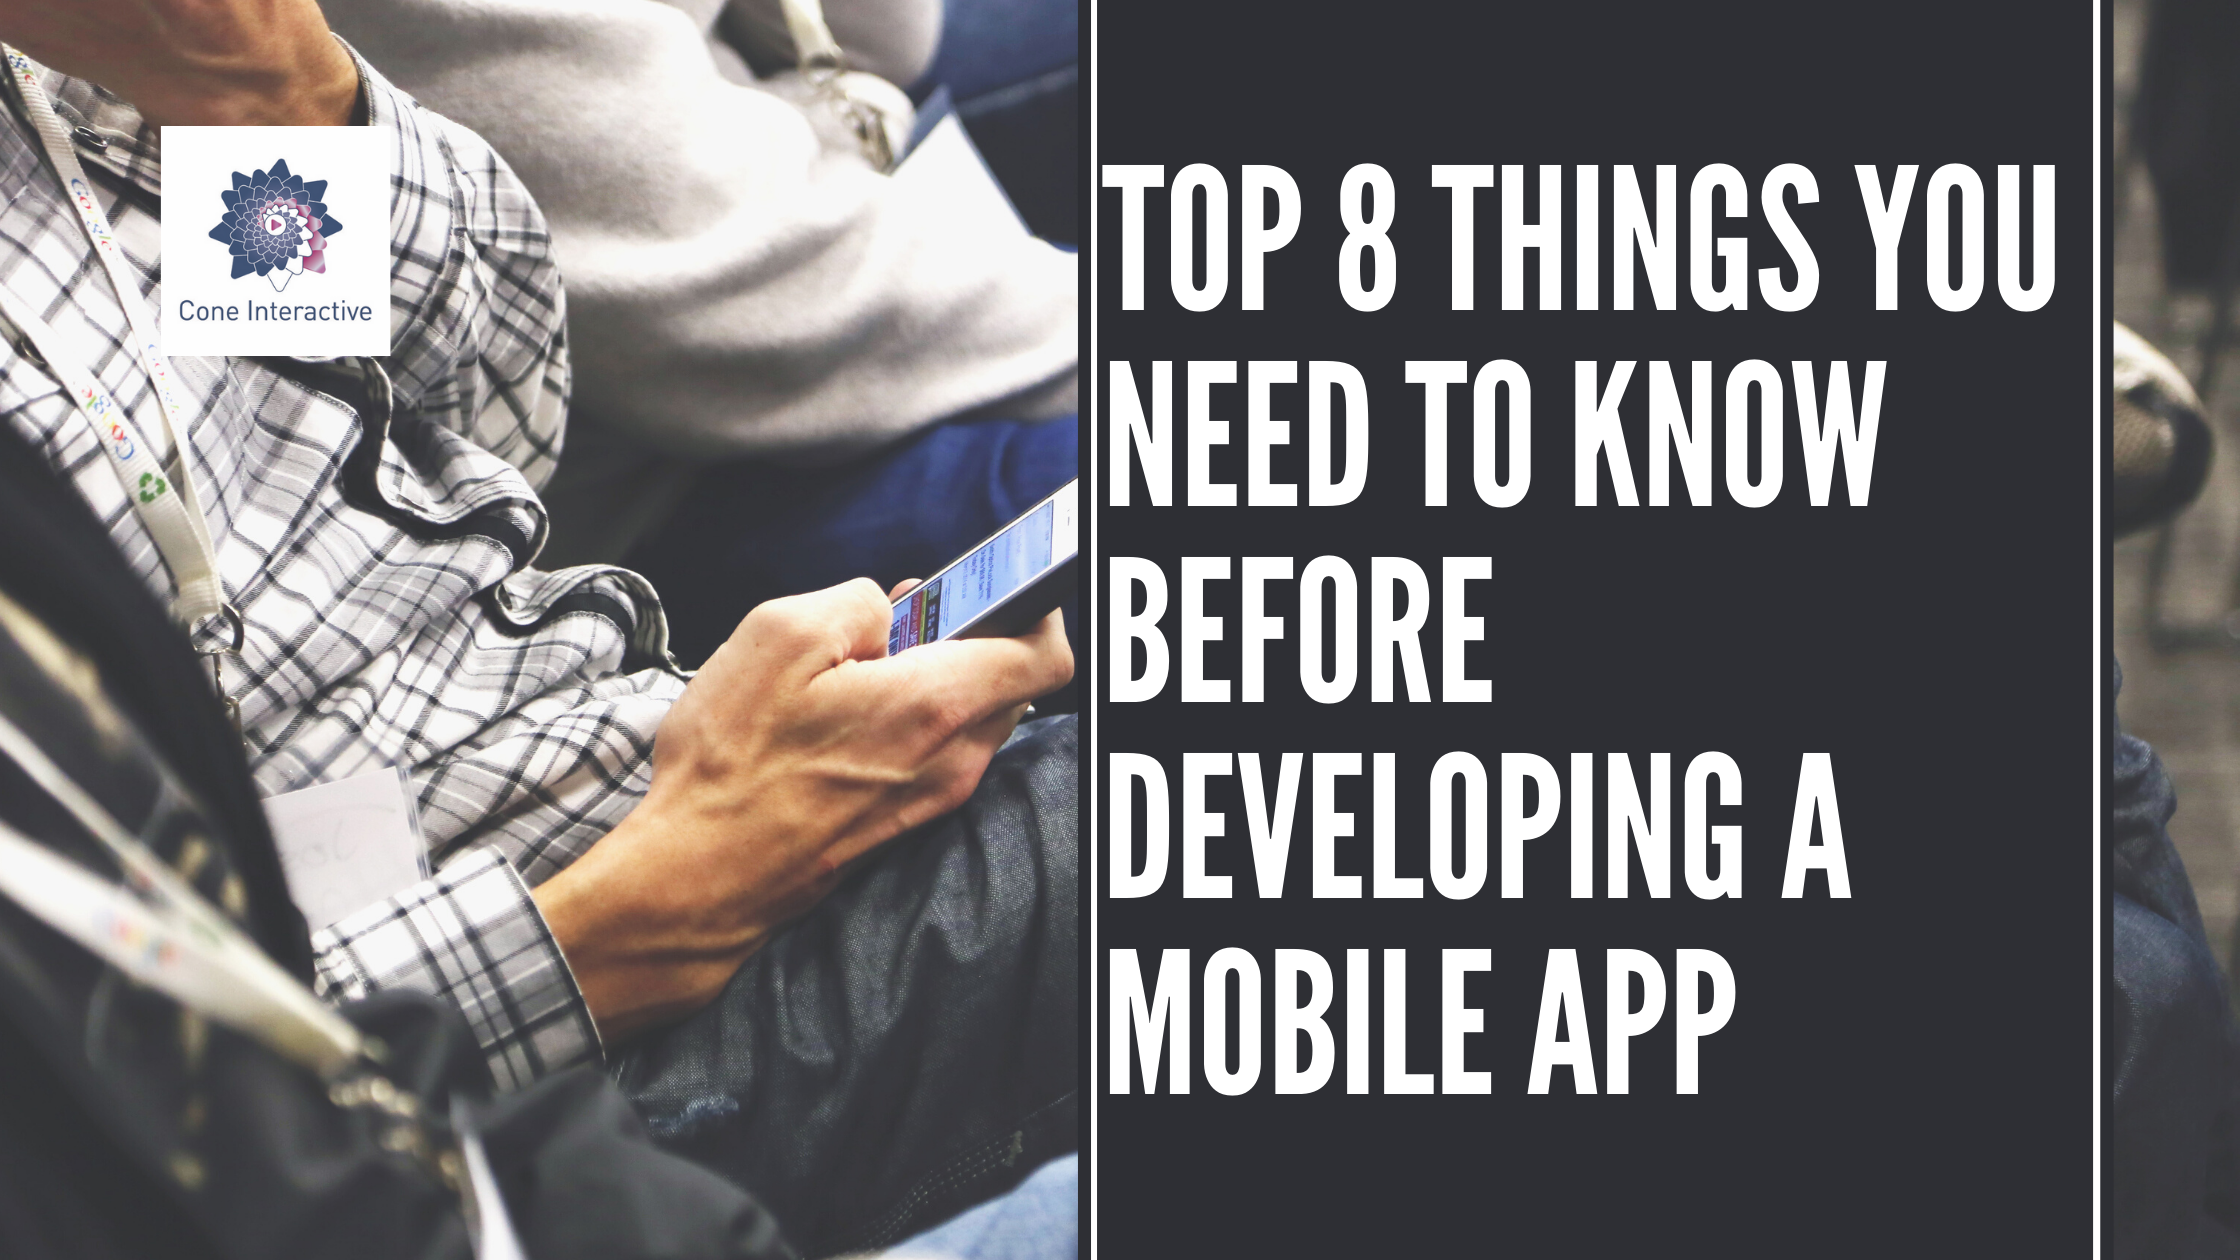 Developing a Mobile App